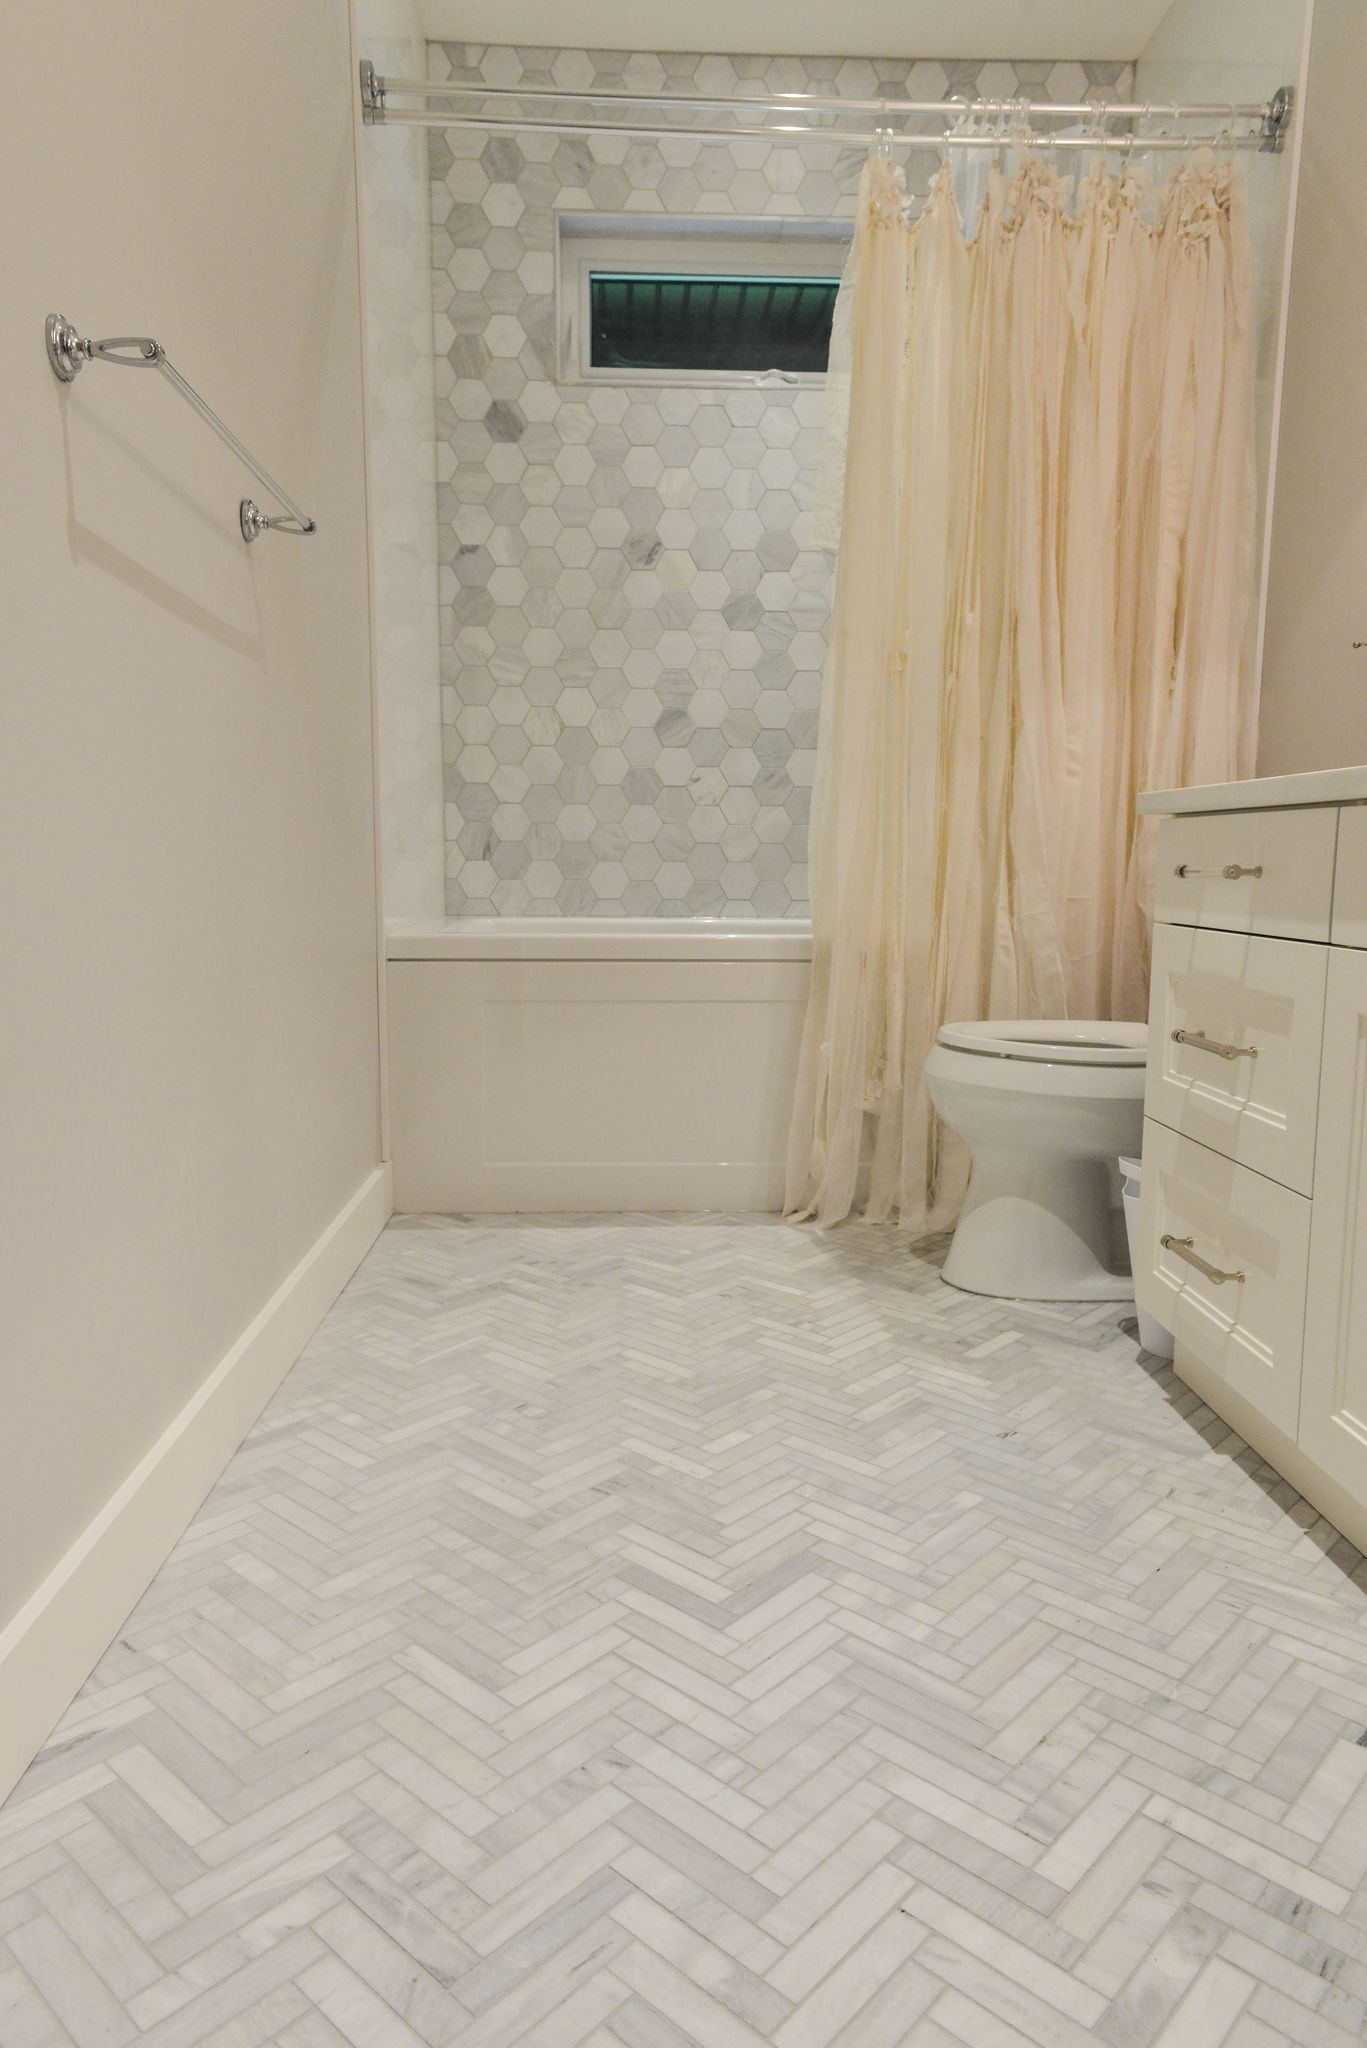 Grey marble tile in herringbone pattern on floor grey marble hexagon tile on shower wall Marble hex tile bathroom floor